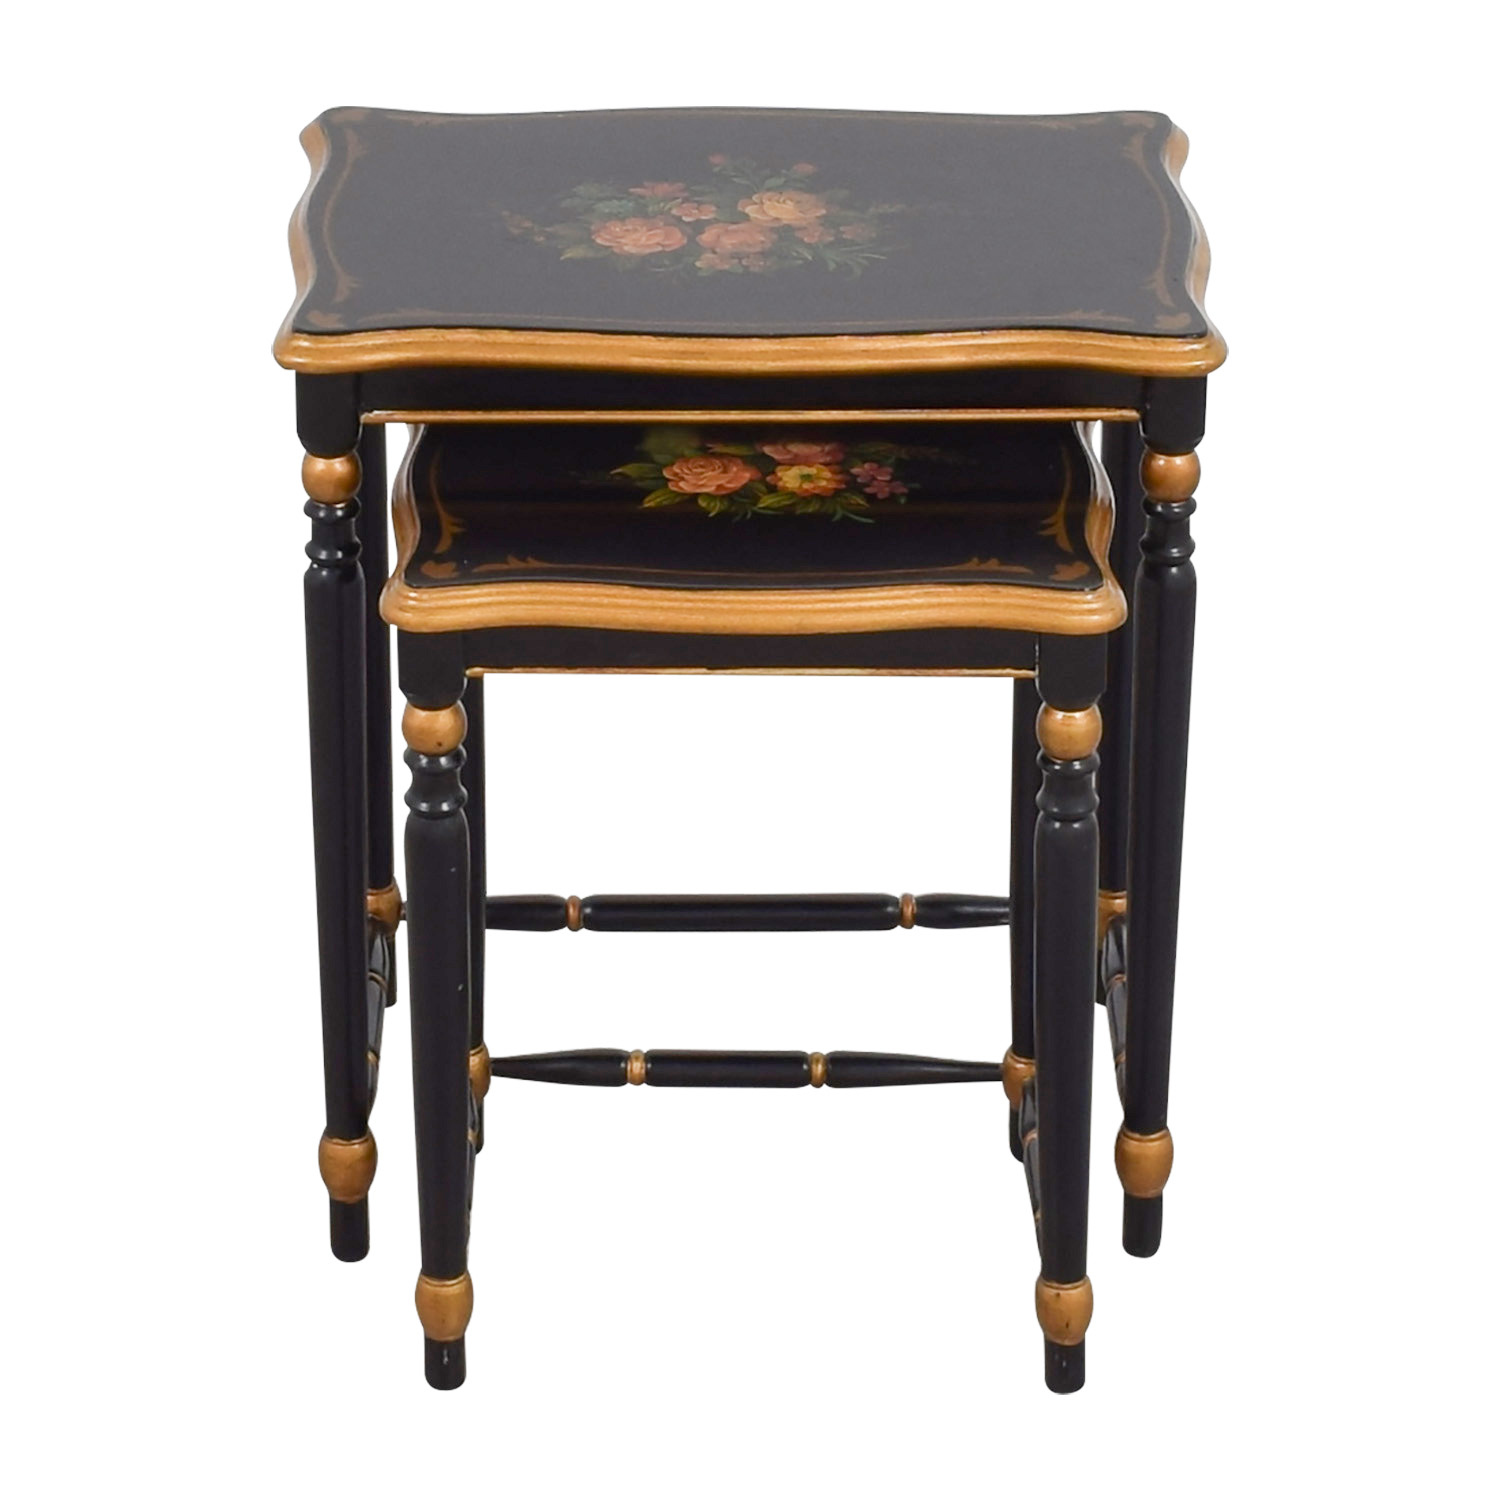 Oriental Accent Oriental Accent Nesting Tables with Painted Flower Design used